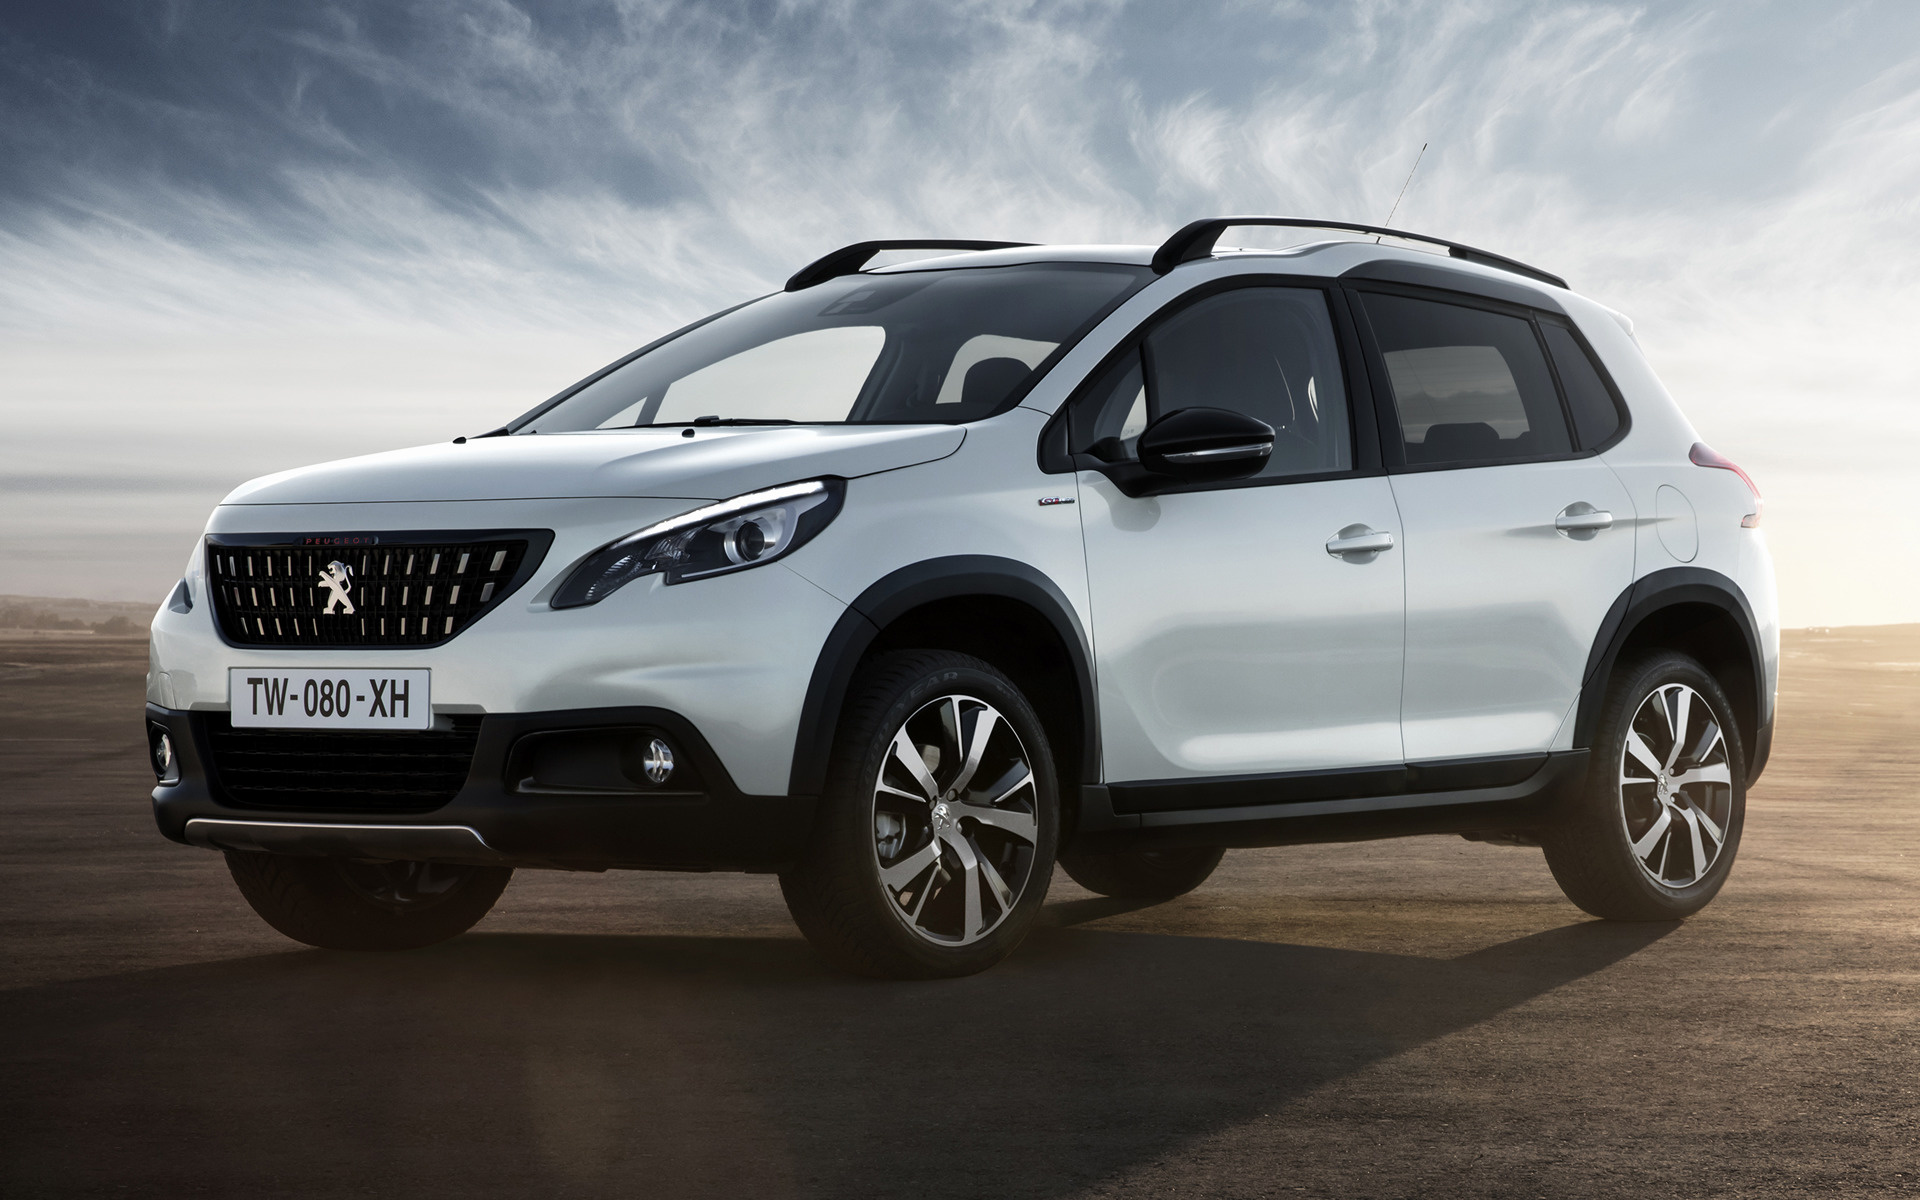 2016 Peugeot 2008 GT Line - Wallpapers and HD Images | Car ...